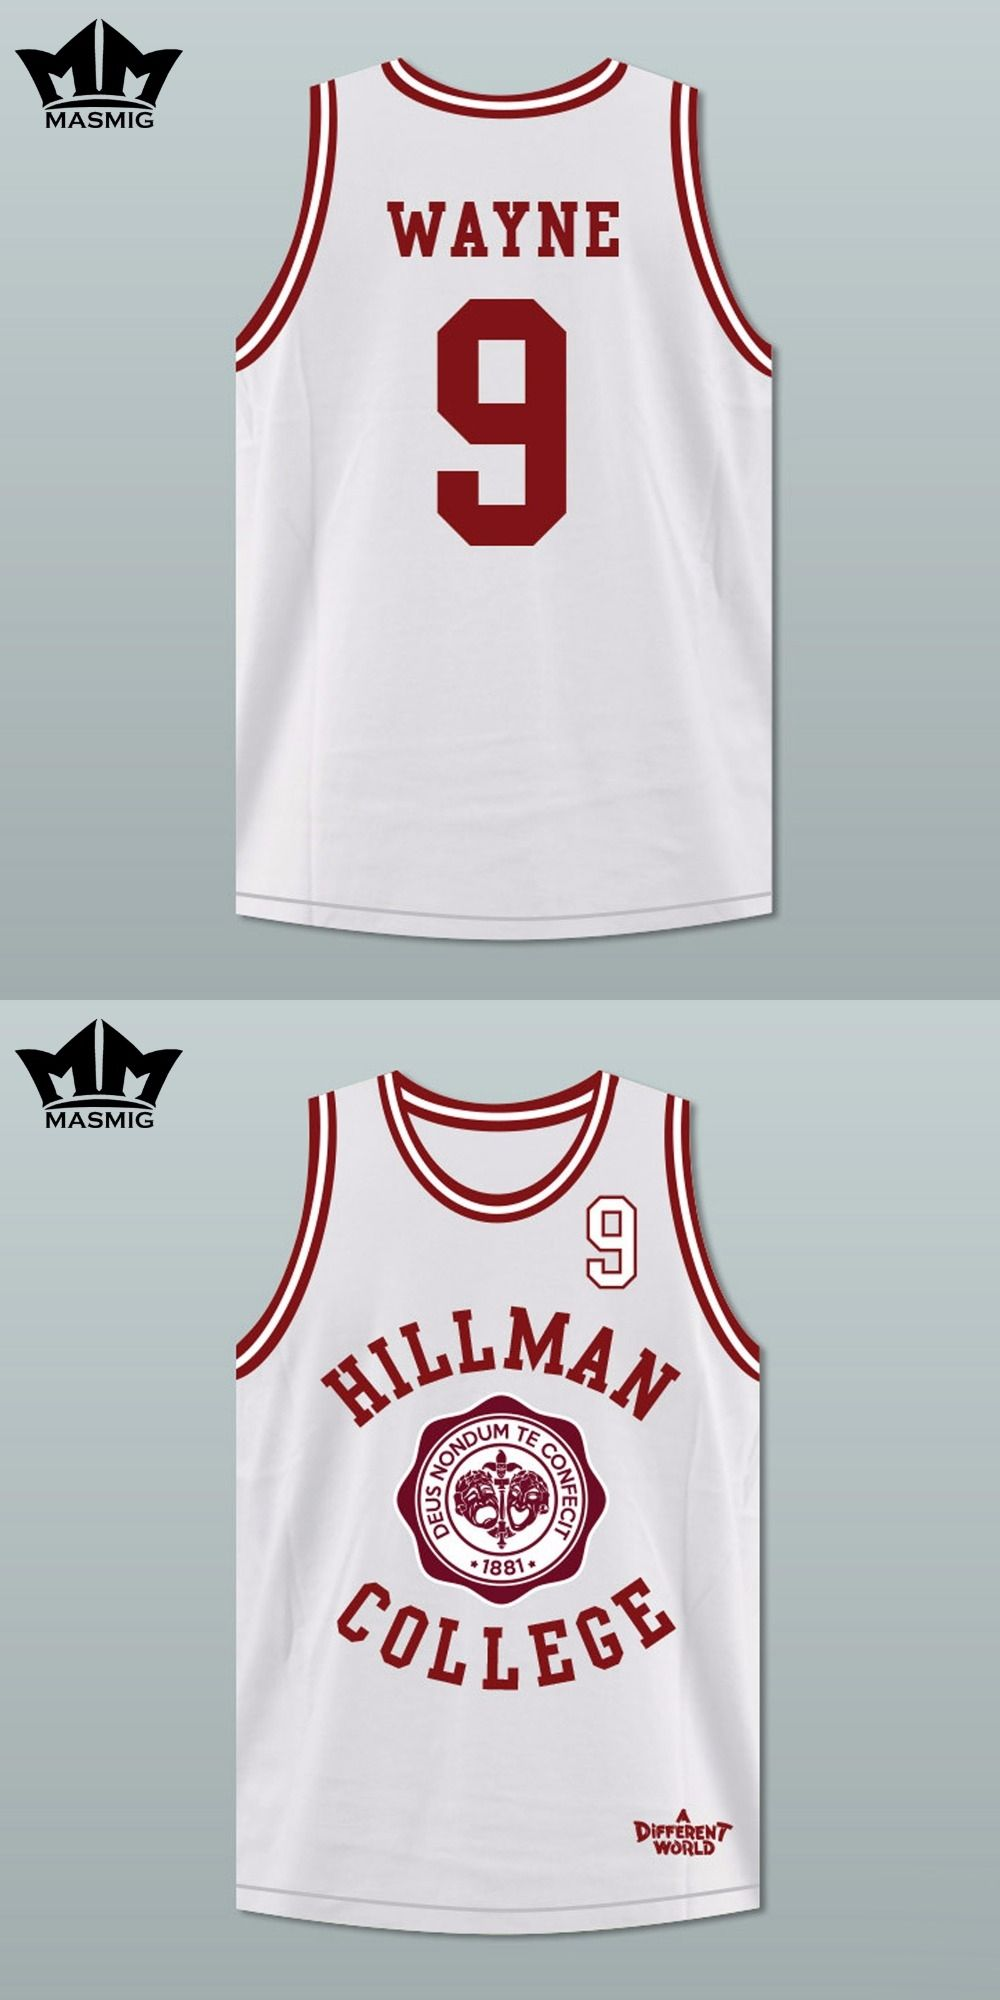 57f65ede9f9e MM MASMIG A Different World Dwayne Wayne 9 Hillman College Theater  Basketball Jersey White For Free